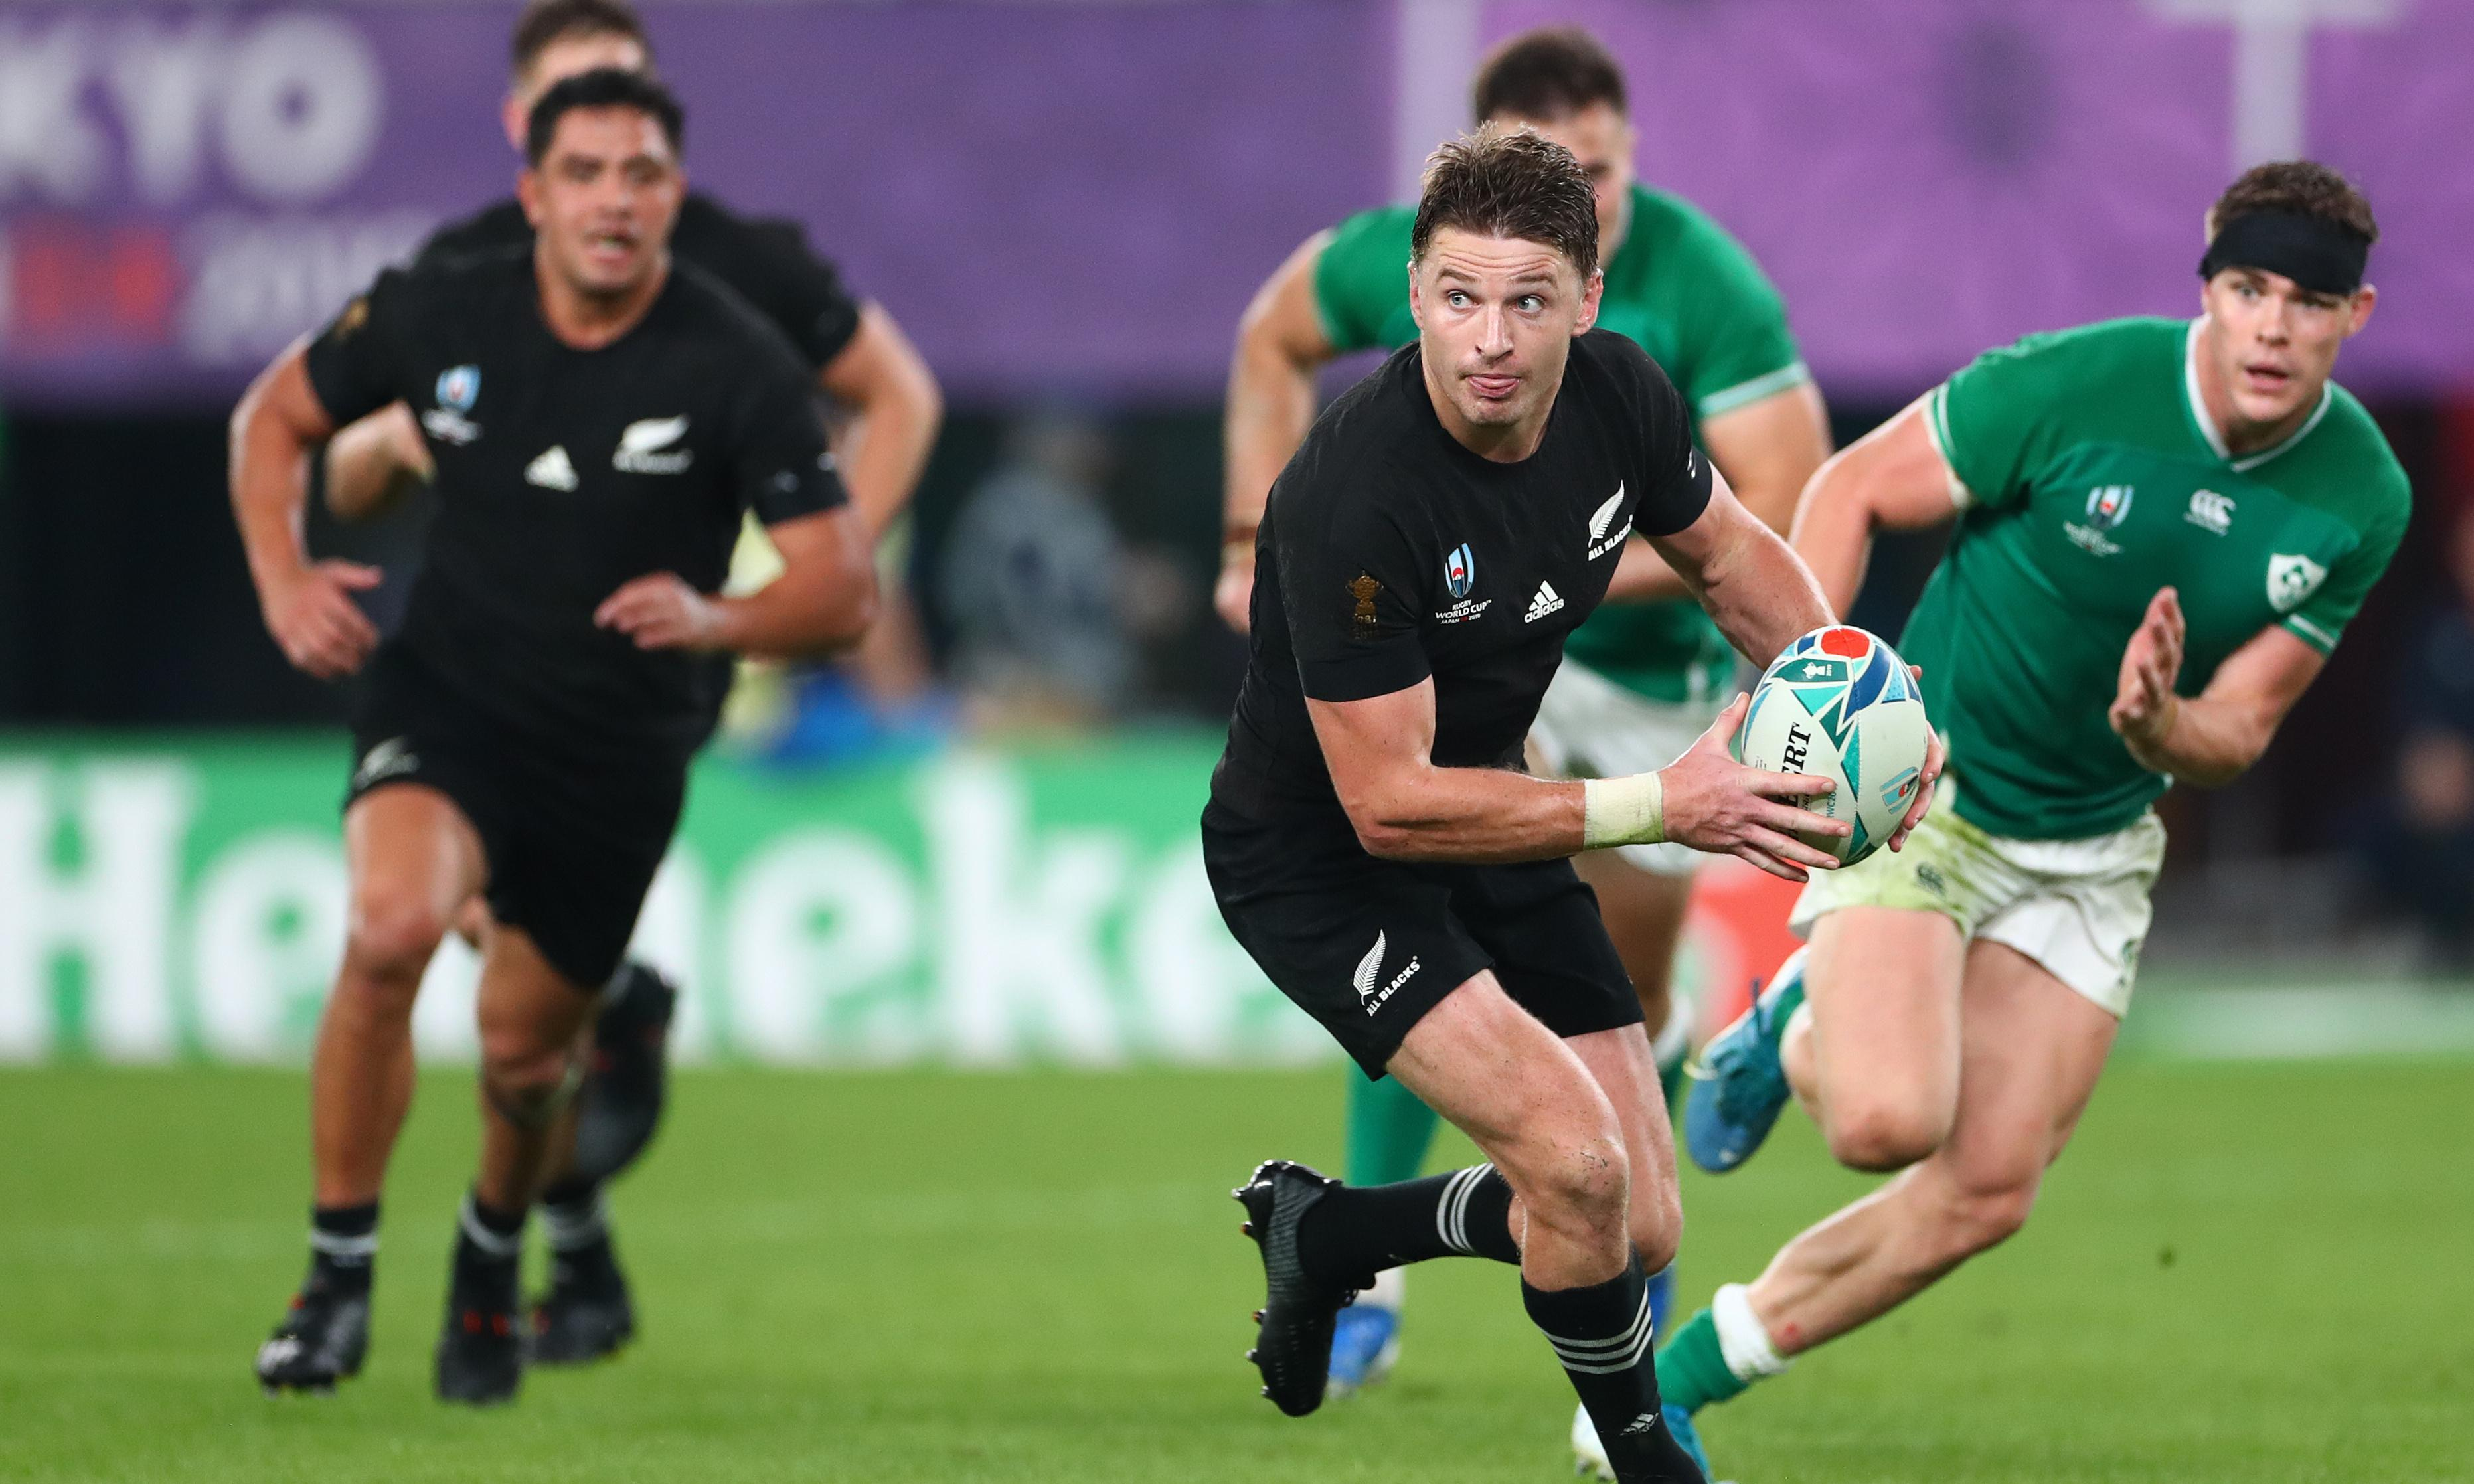 Almighty All Blacks lay waste to the side that inspired their rebuild